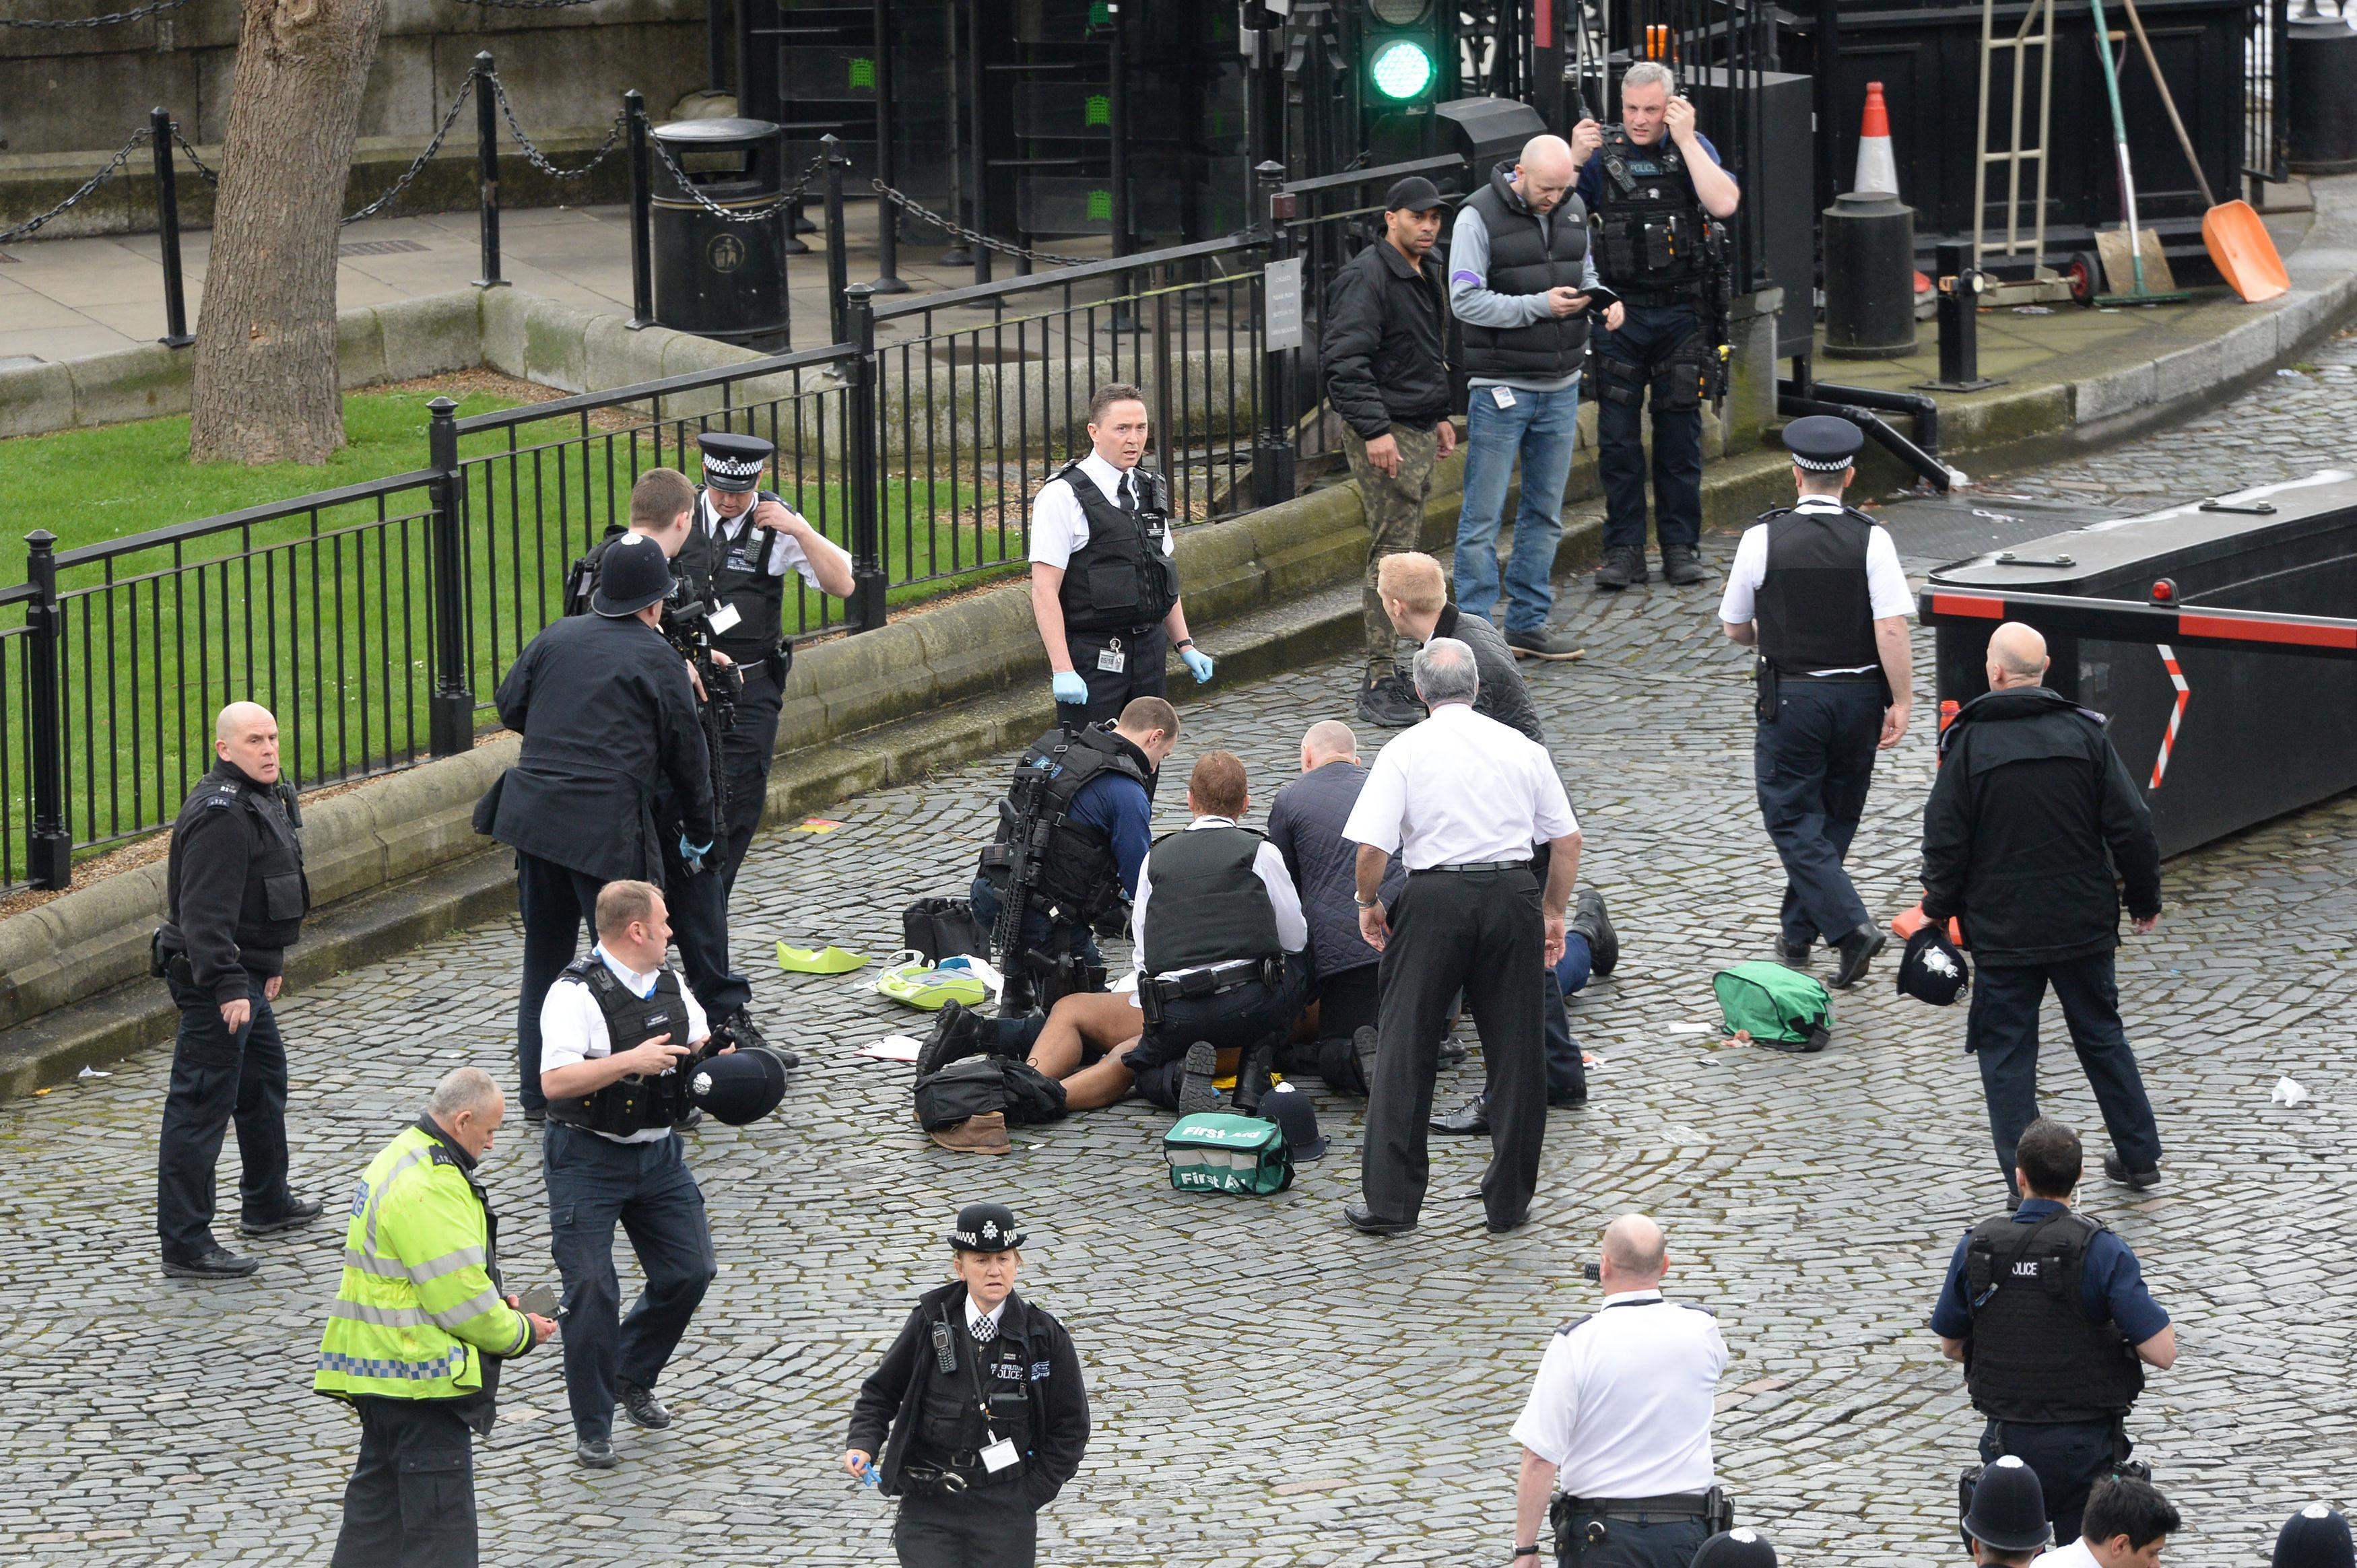 Image result for Terrorist attack in London: 2 places of war, news of death of many people